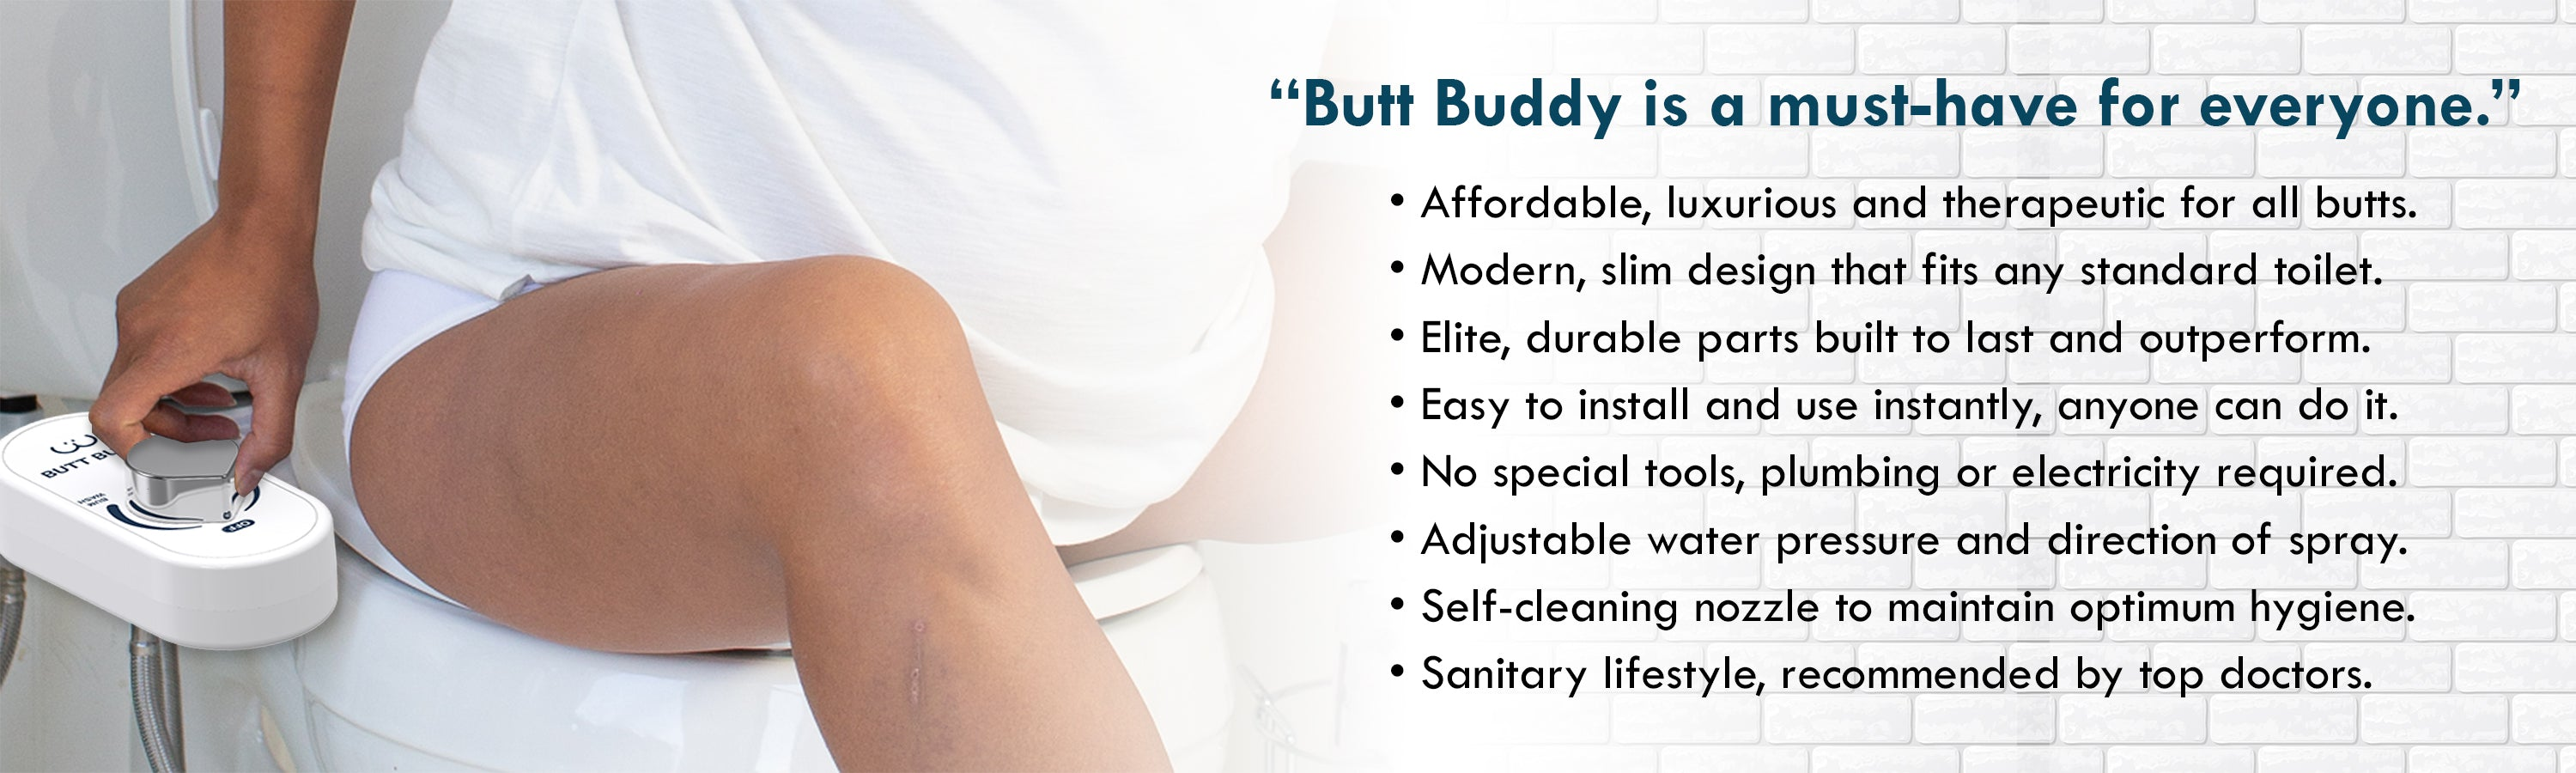 In My Bathroom (IMB) | Butt Buddy - Bidet Toilet Attachment - Fresh Water Sprayer - Features - Must Have For Everyone - Man On Toilet - BBB